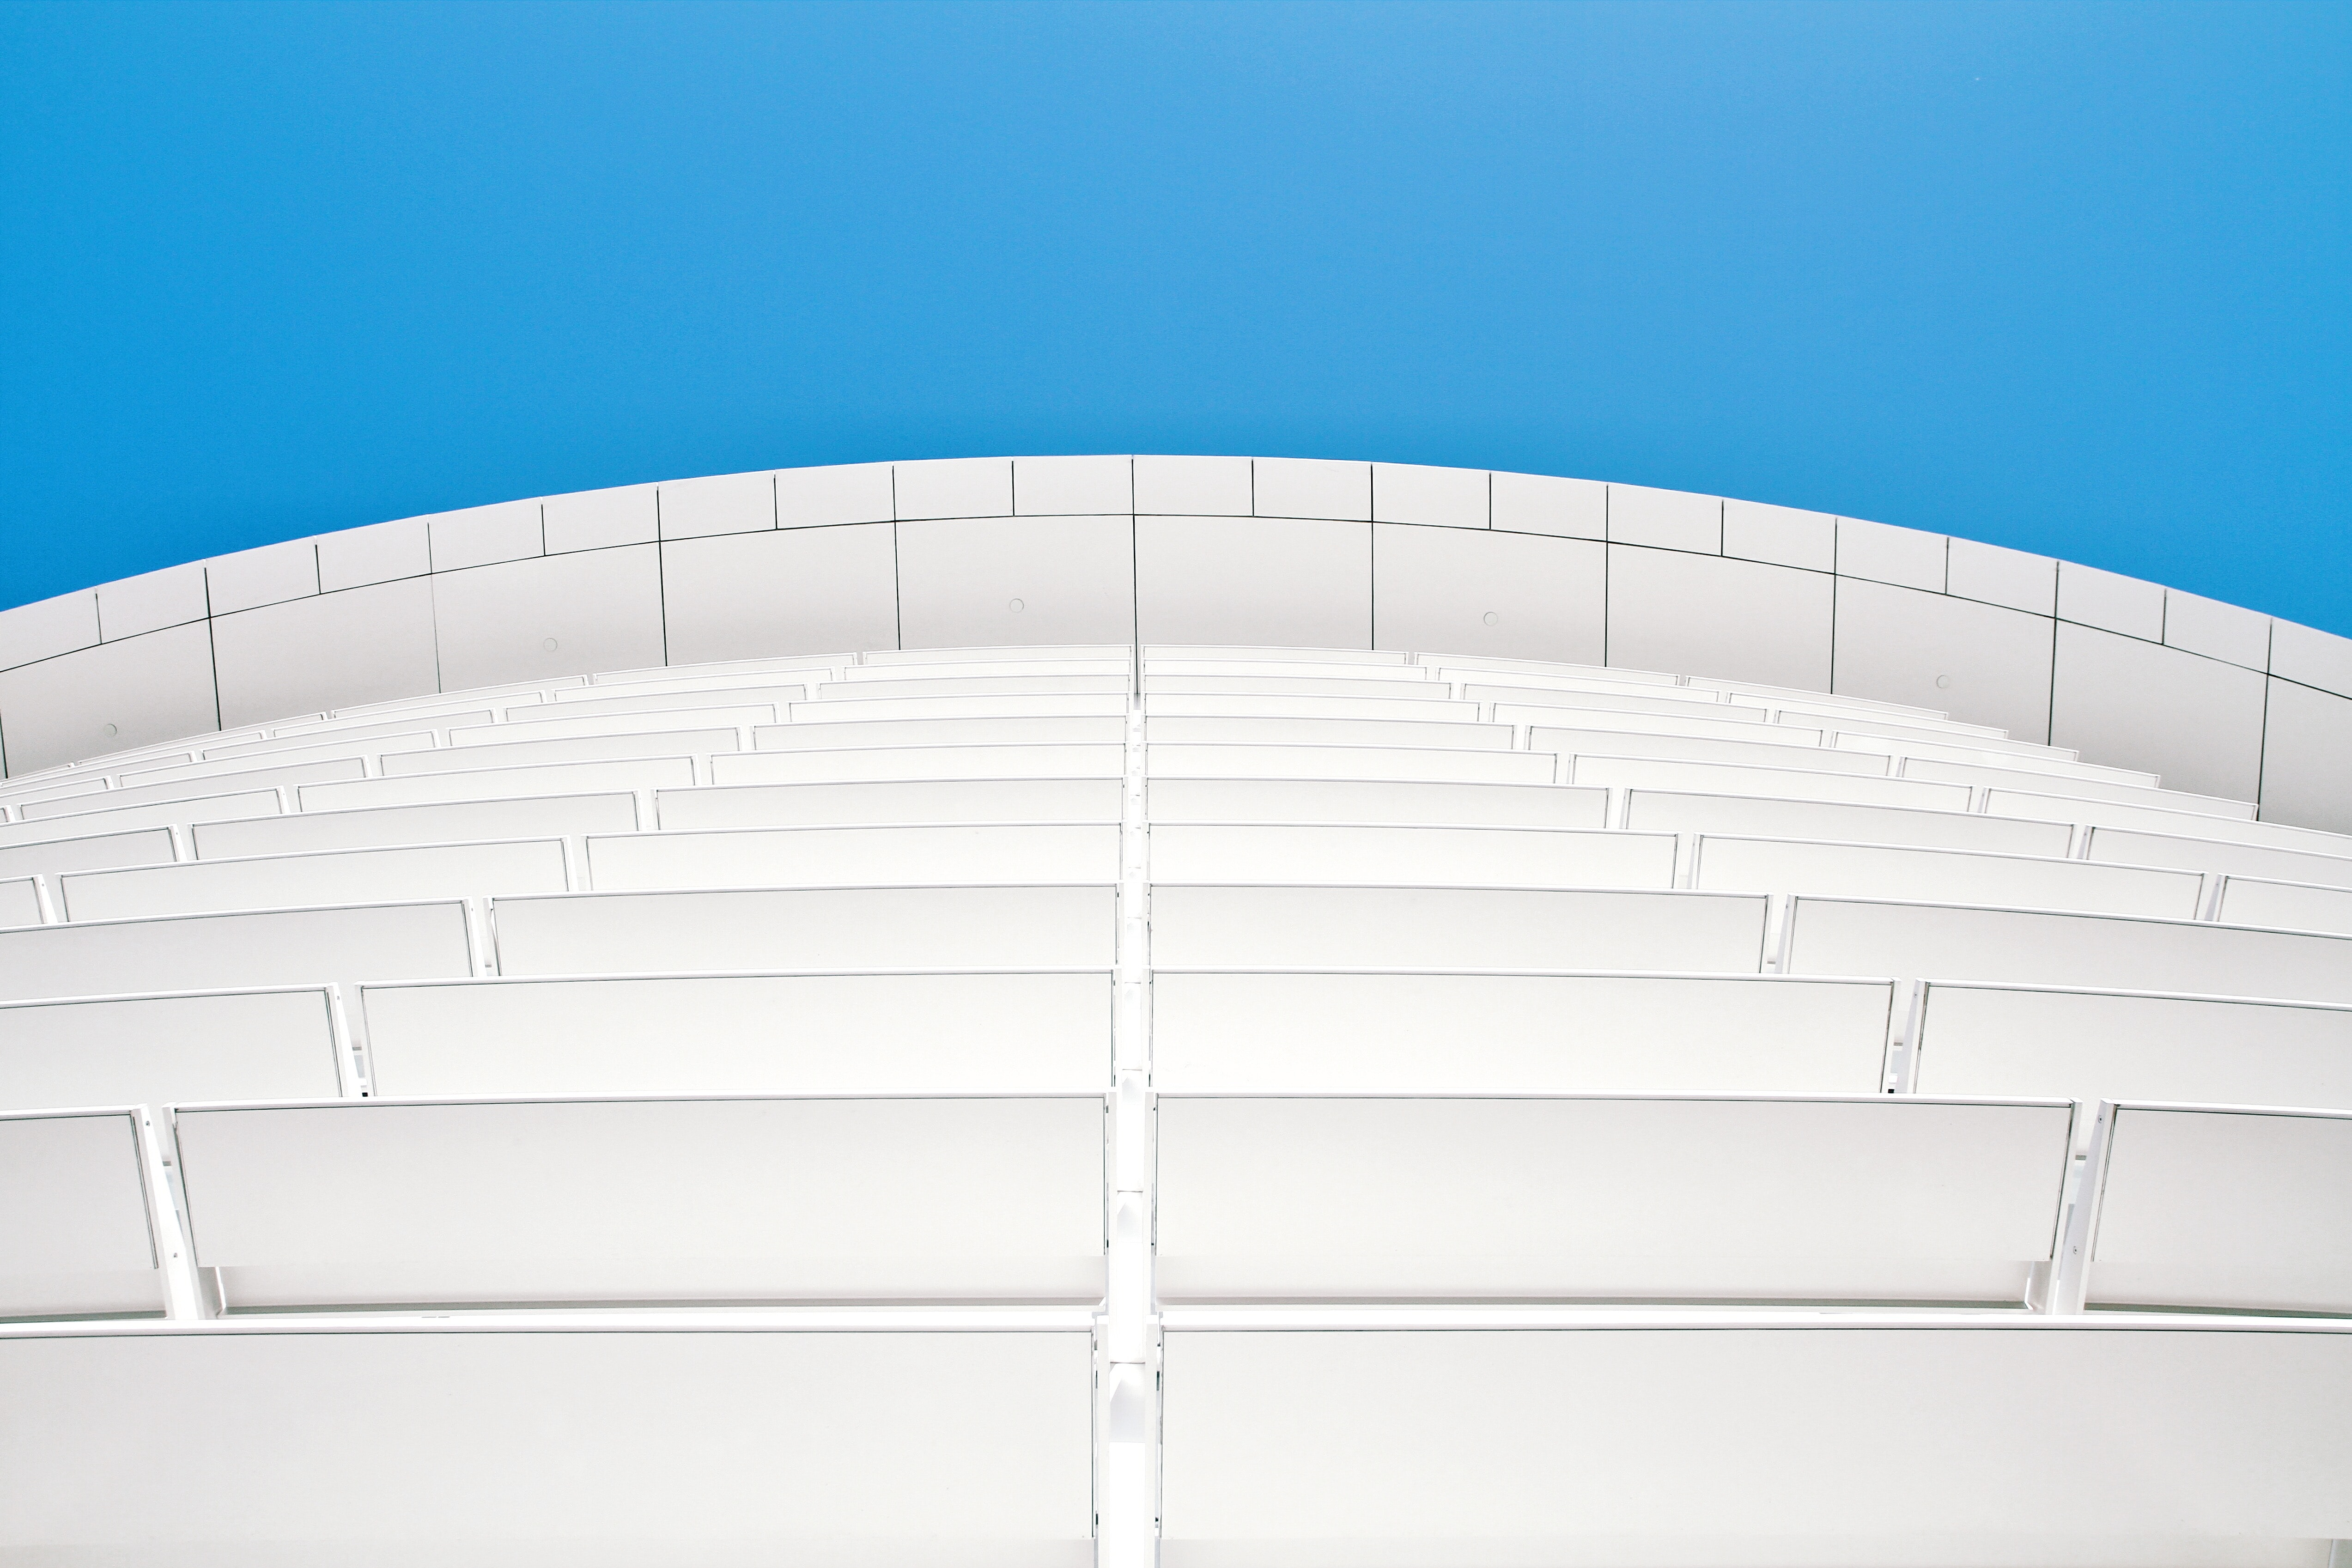 A low-angle shot of a white facade with white panels